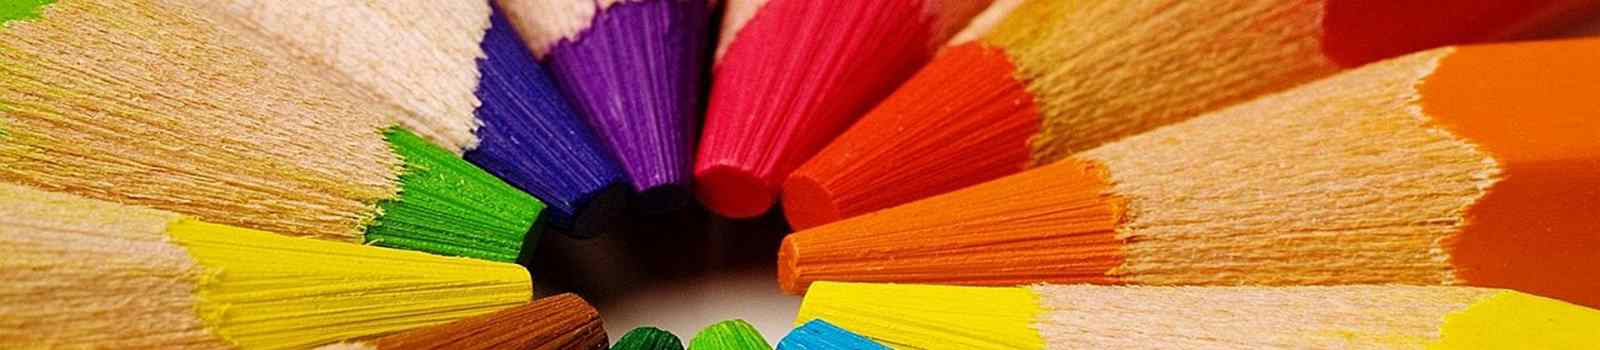 couleur crayons